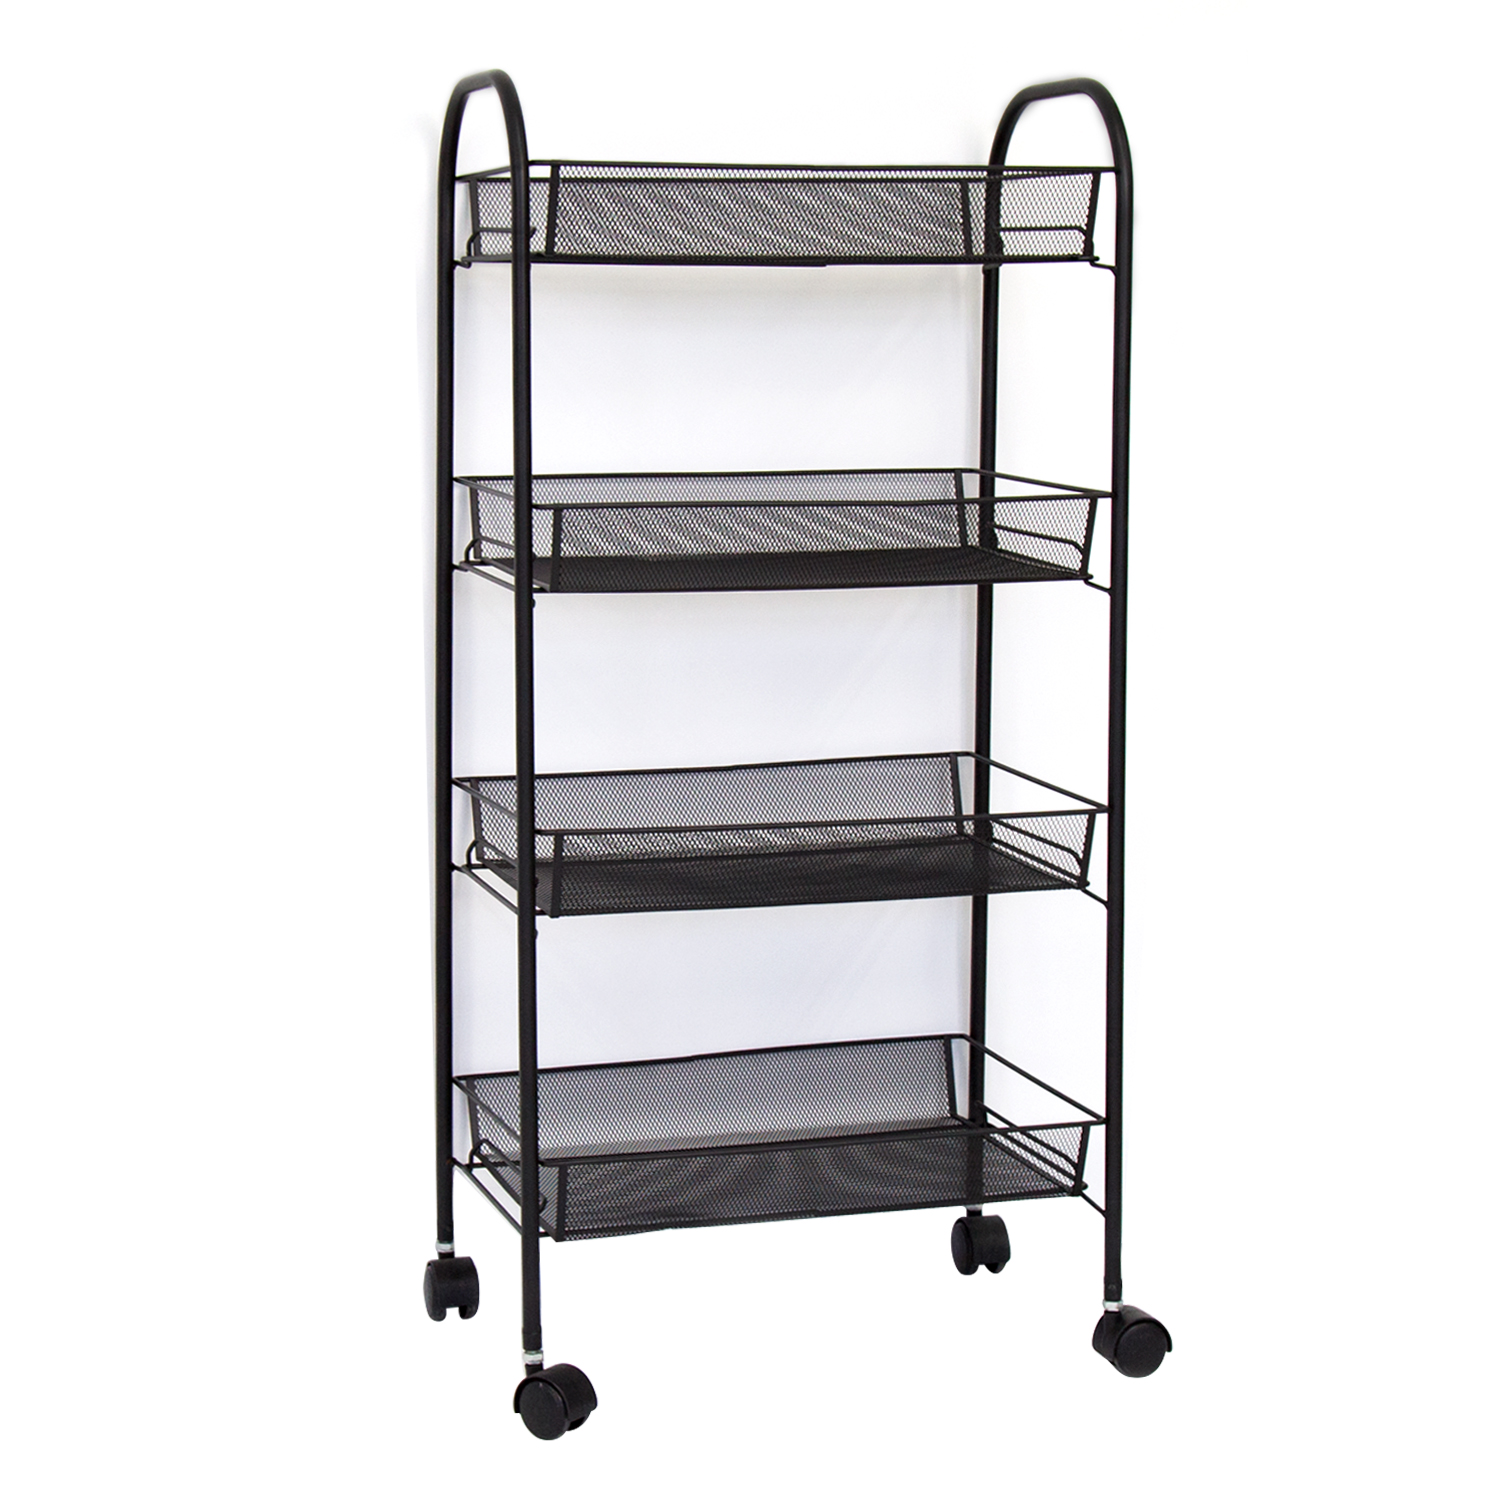 172a90664abc Details about 4 Tier Rolling Metal Kitchen Utility Trolley Cart W/ Storage  Shelf Basket Black